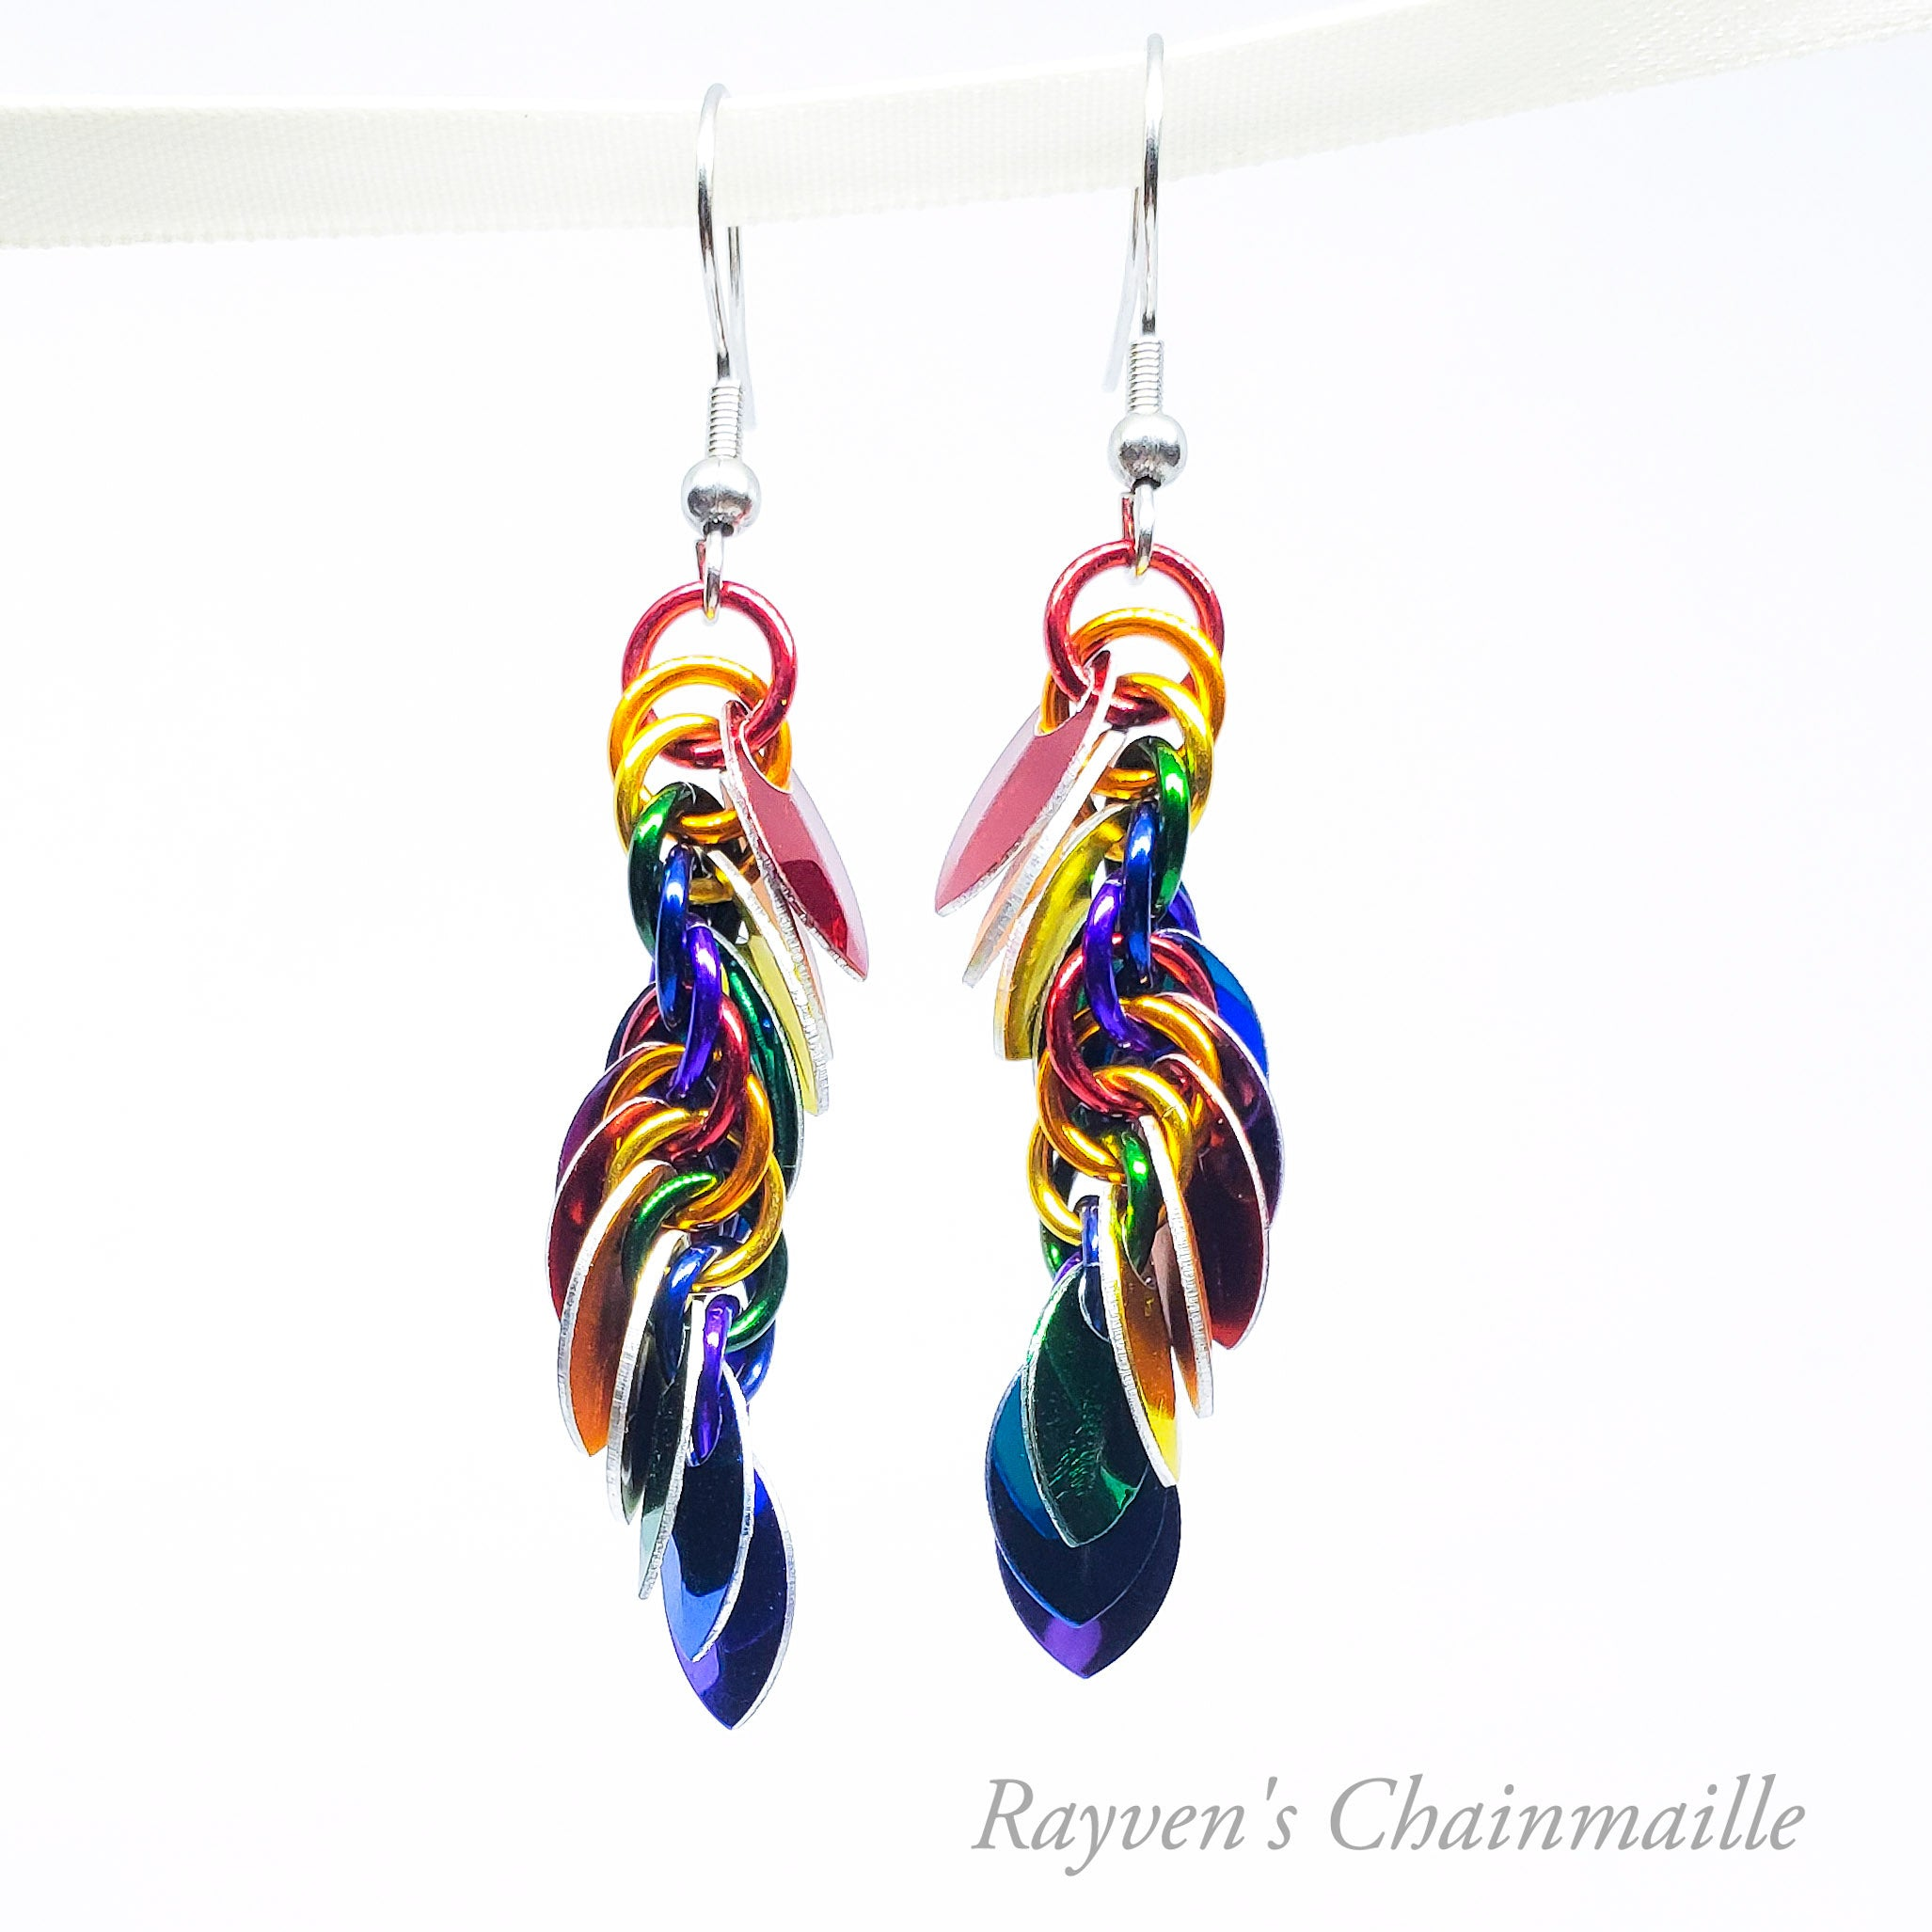 Rainbow Punk Scale Chainmail Earrings - Rayven's Chainmaille